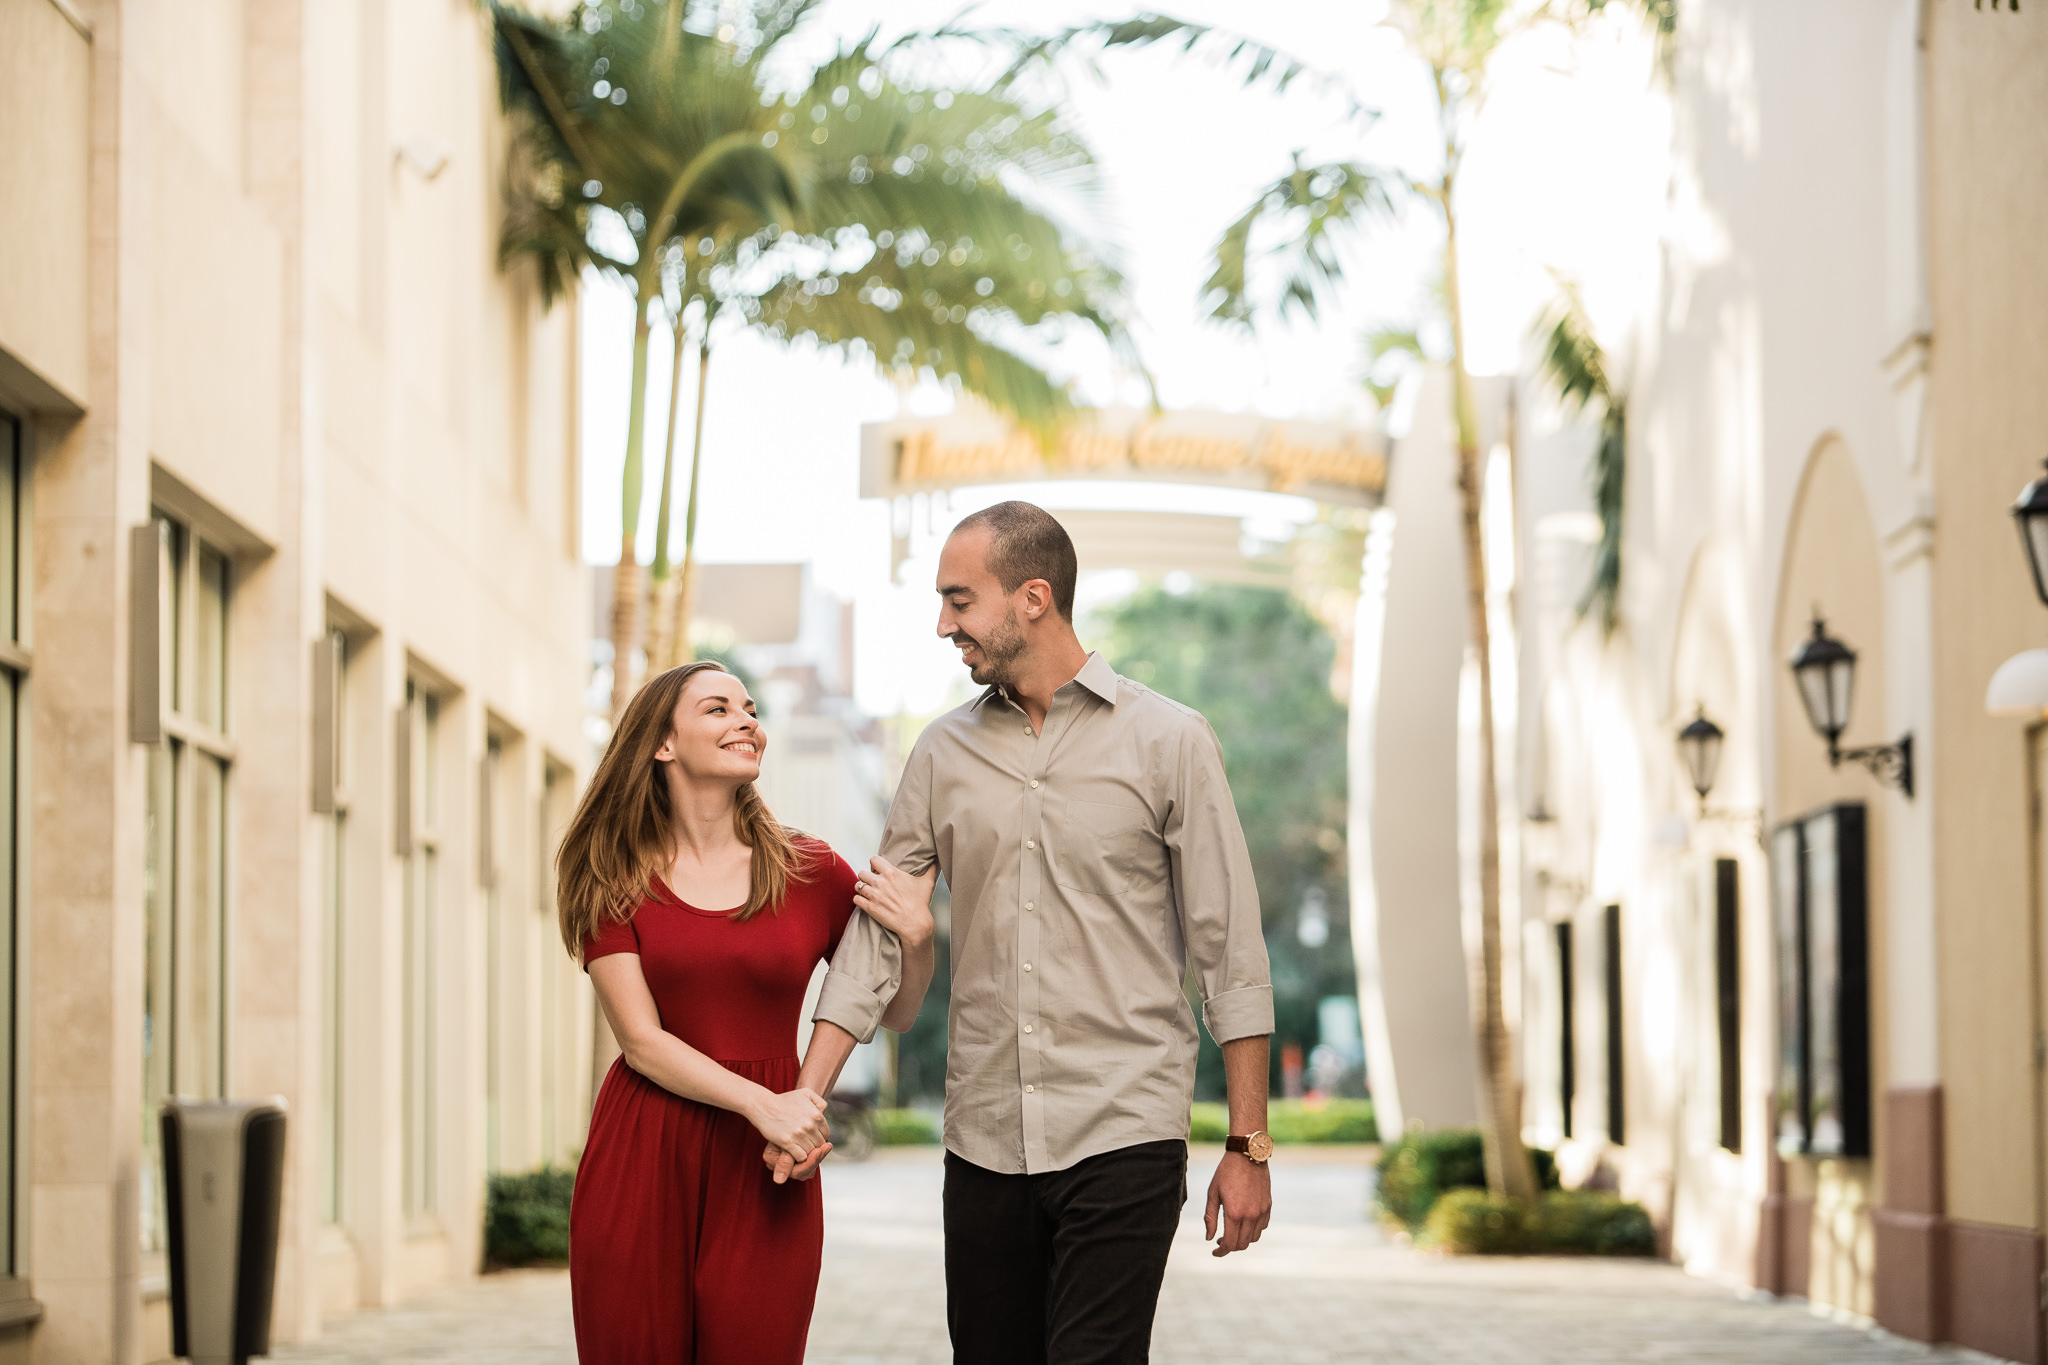 TAMPA_ENGAGEMENT_PHOTOGRAPHER_SMMZ_9415.jpg